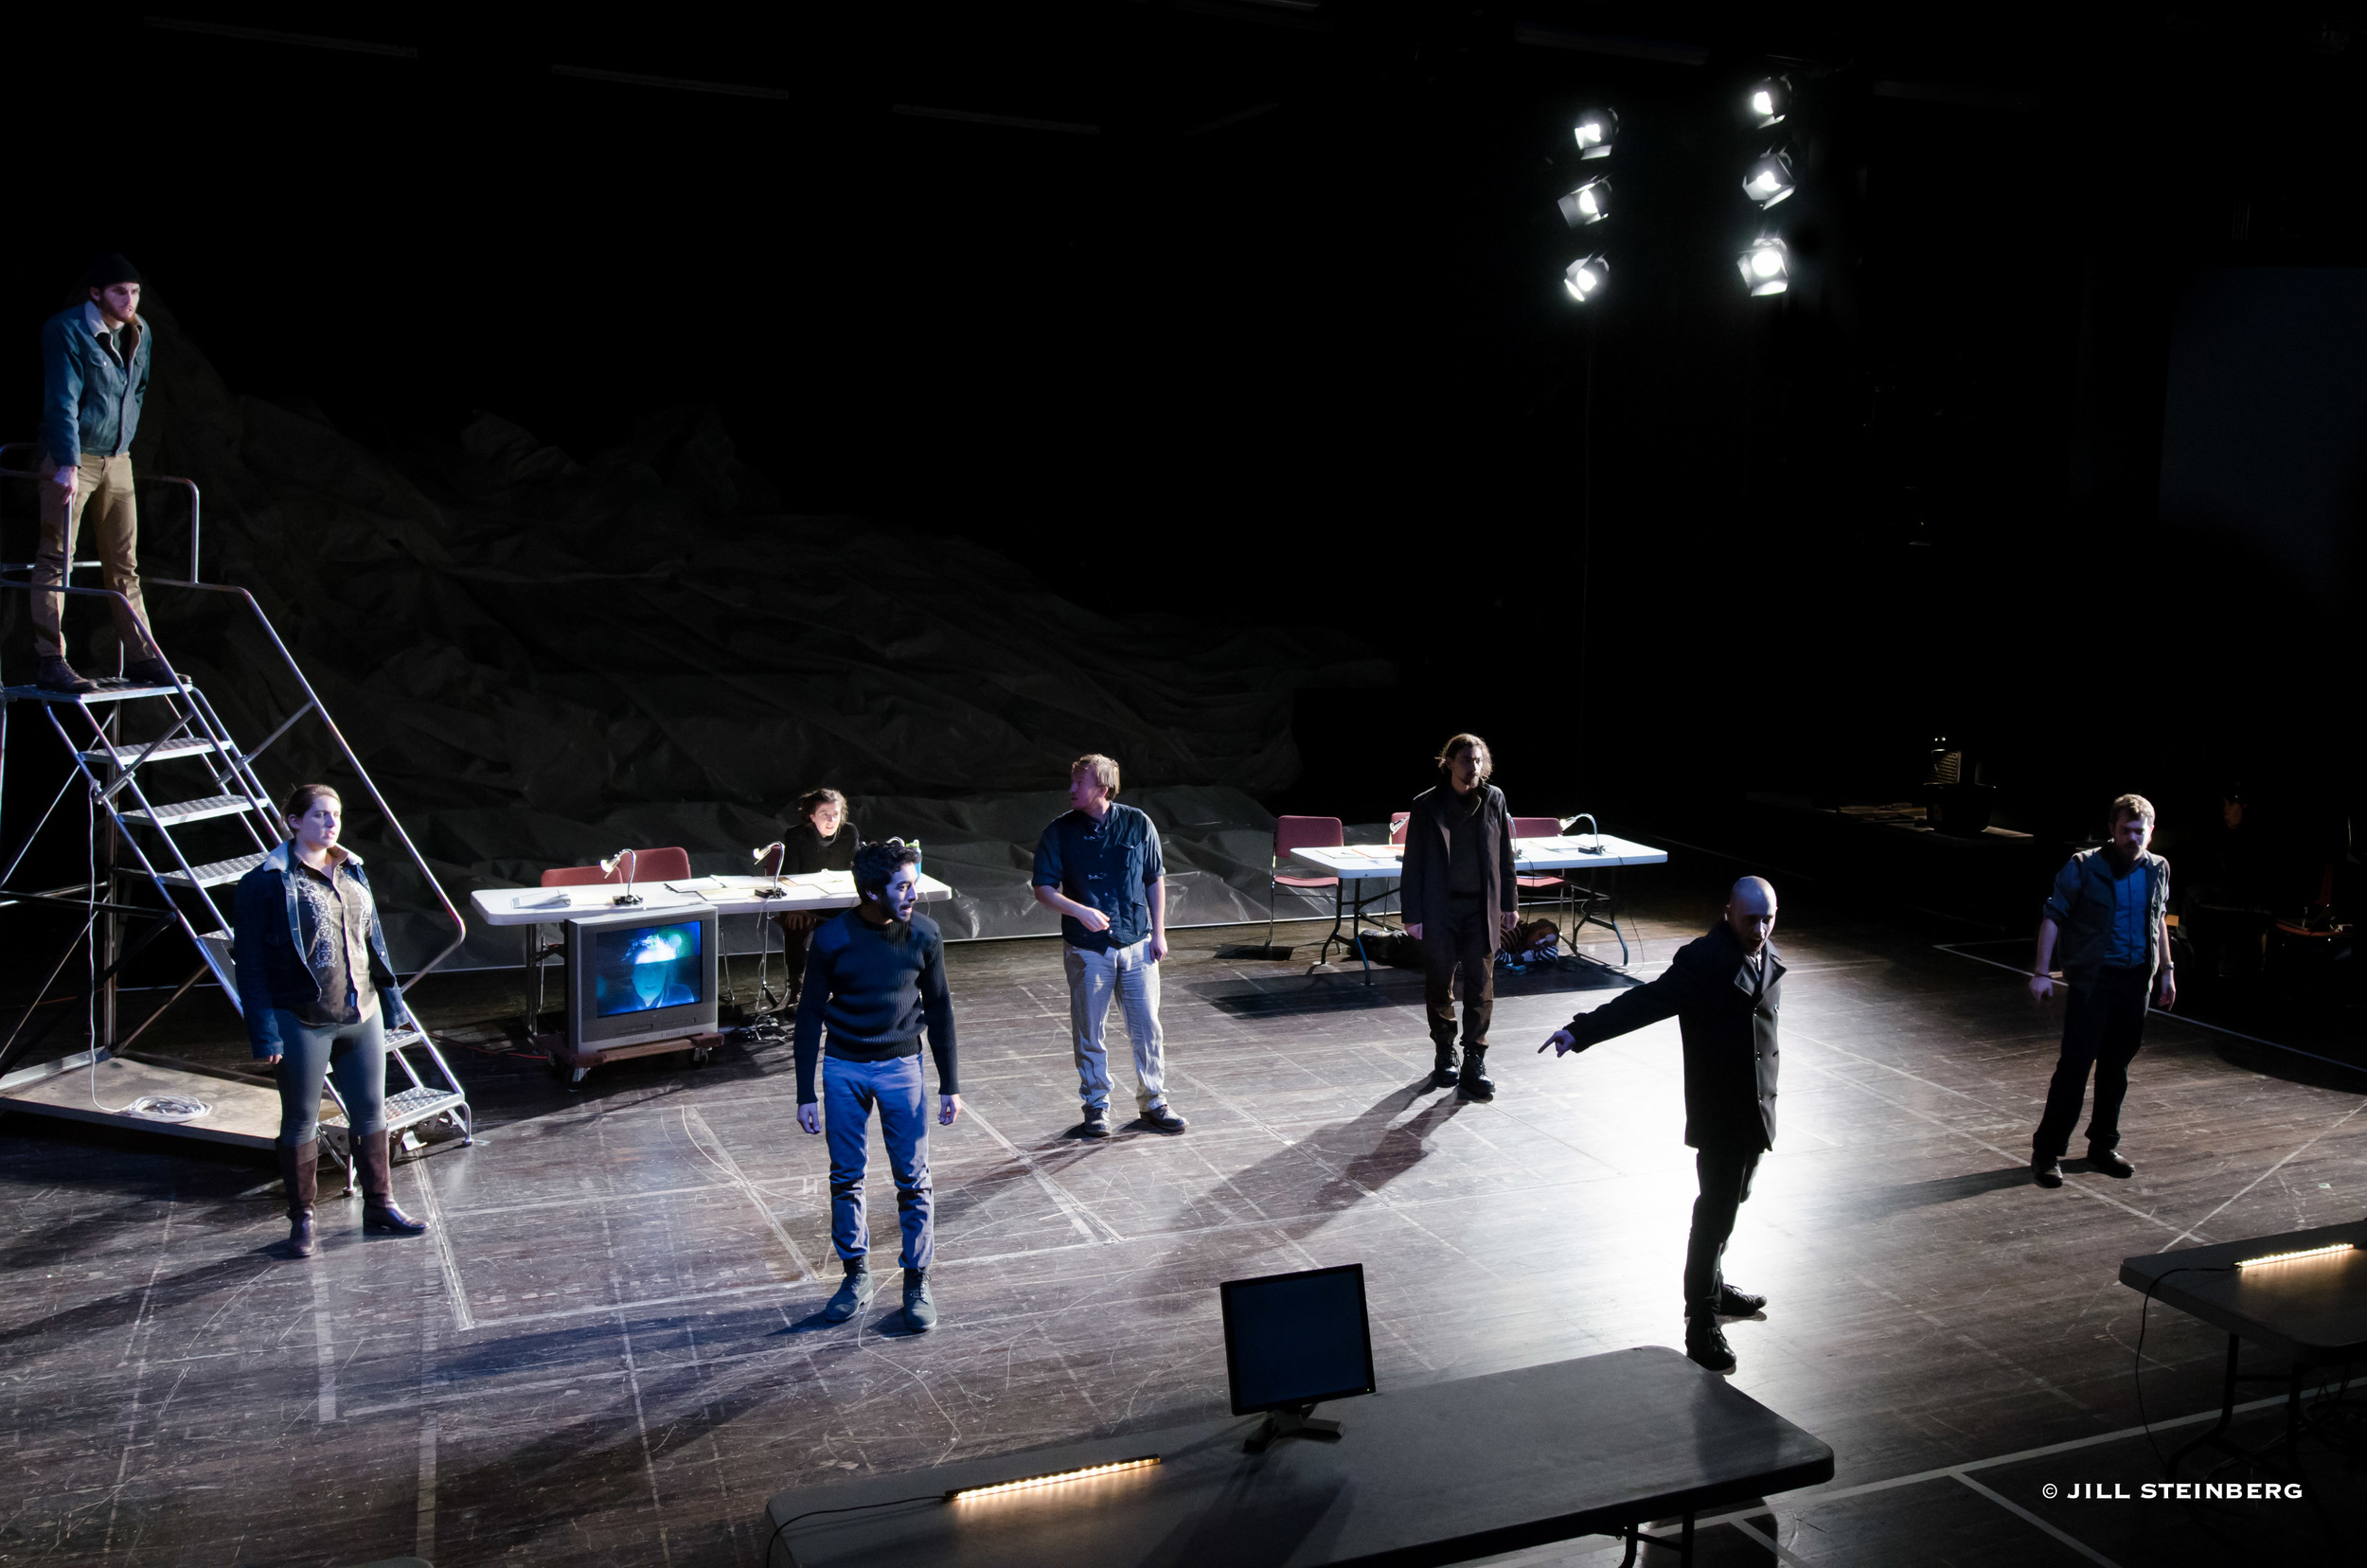 2014-04-11 - Moby Dick — Rehearsed_Moby Dick - Rehearsed_0691_.jpg